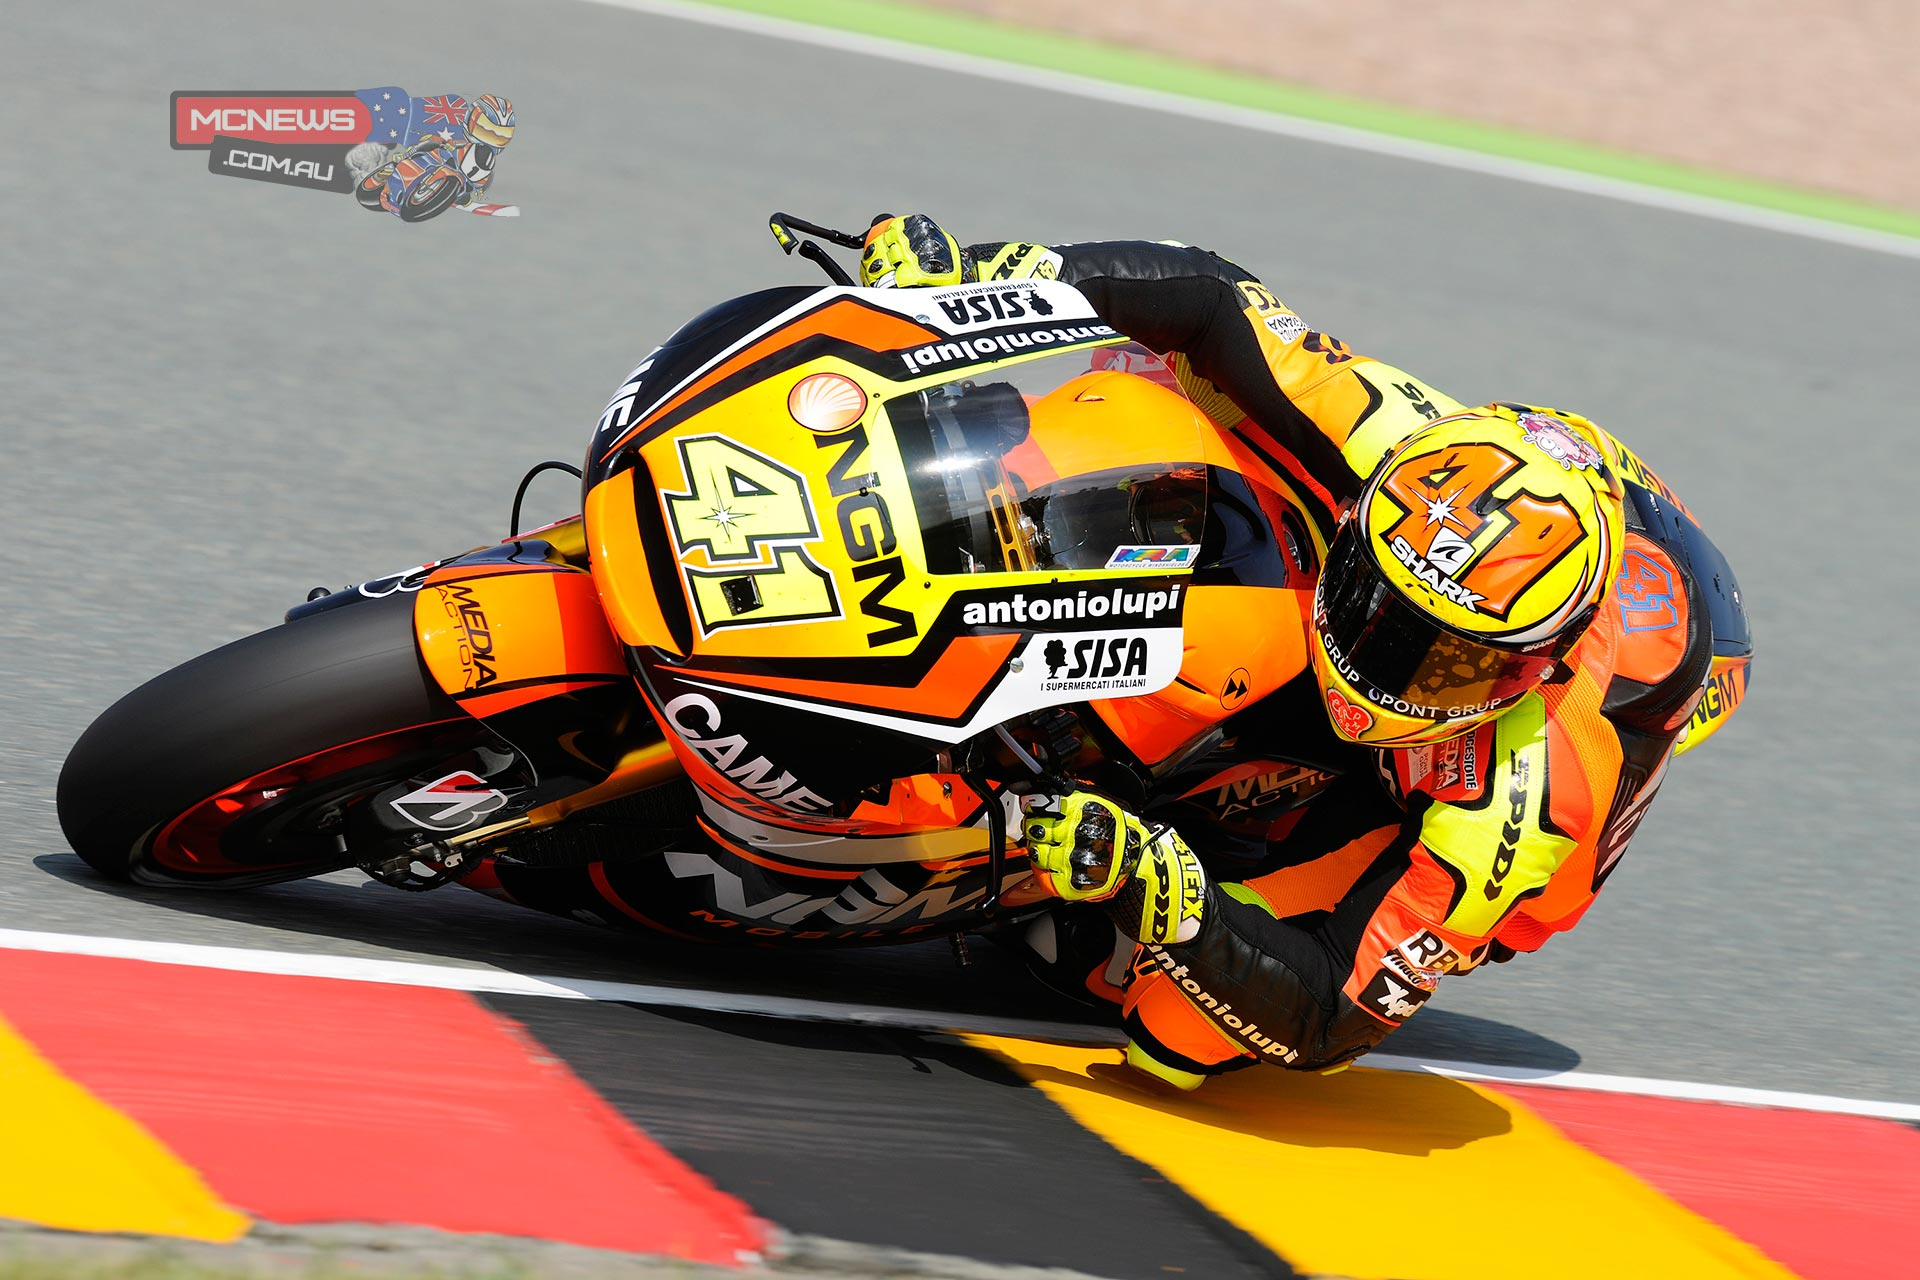 "Aleix Espargaro - ""We continue our positive momentum. With Barcelona and Assen, this is the third race that we are constantly improving and today I'm satisfied because in the FP2 we tested the Forward chassis and it worked really well. We set the third fastest time with a tyre that had 22 laps on and the feeling was very positive. Sachsenring is a very special track for its layout and we will need to test it also on other circuits, but the feeling was really good. Tomorrow we will continue to work in this direction and if everything works well I want to use it also for the qualifying. I have also enjoyed riding here at Sachsenring. I'm confident because we have a good race pace and tomorrow we can make another step forward."""